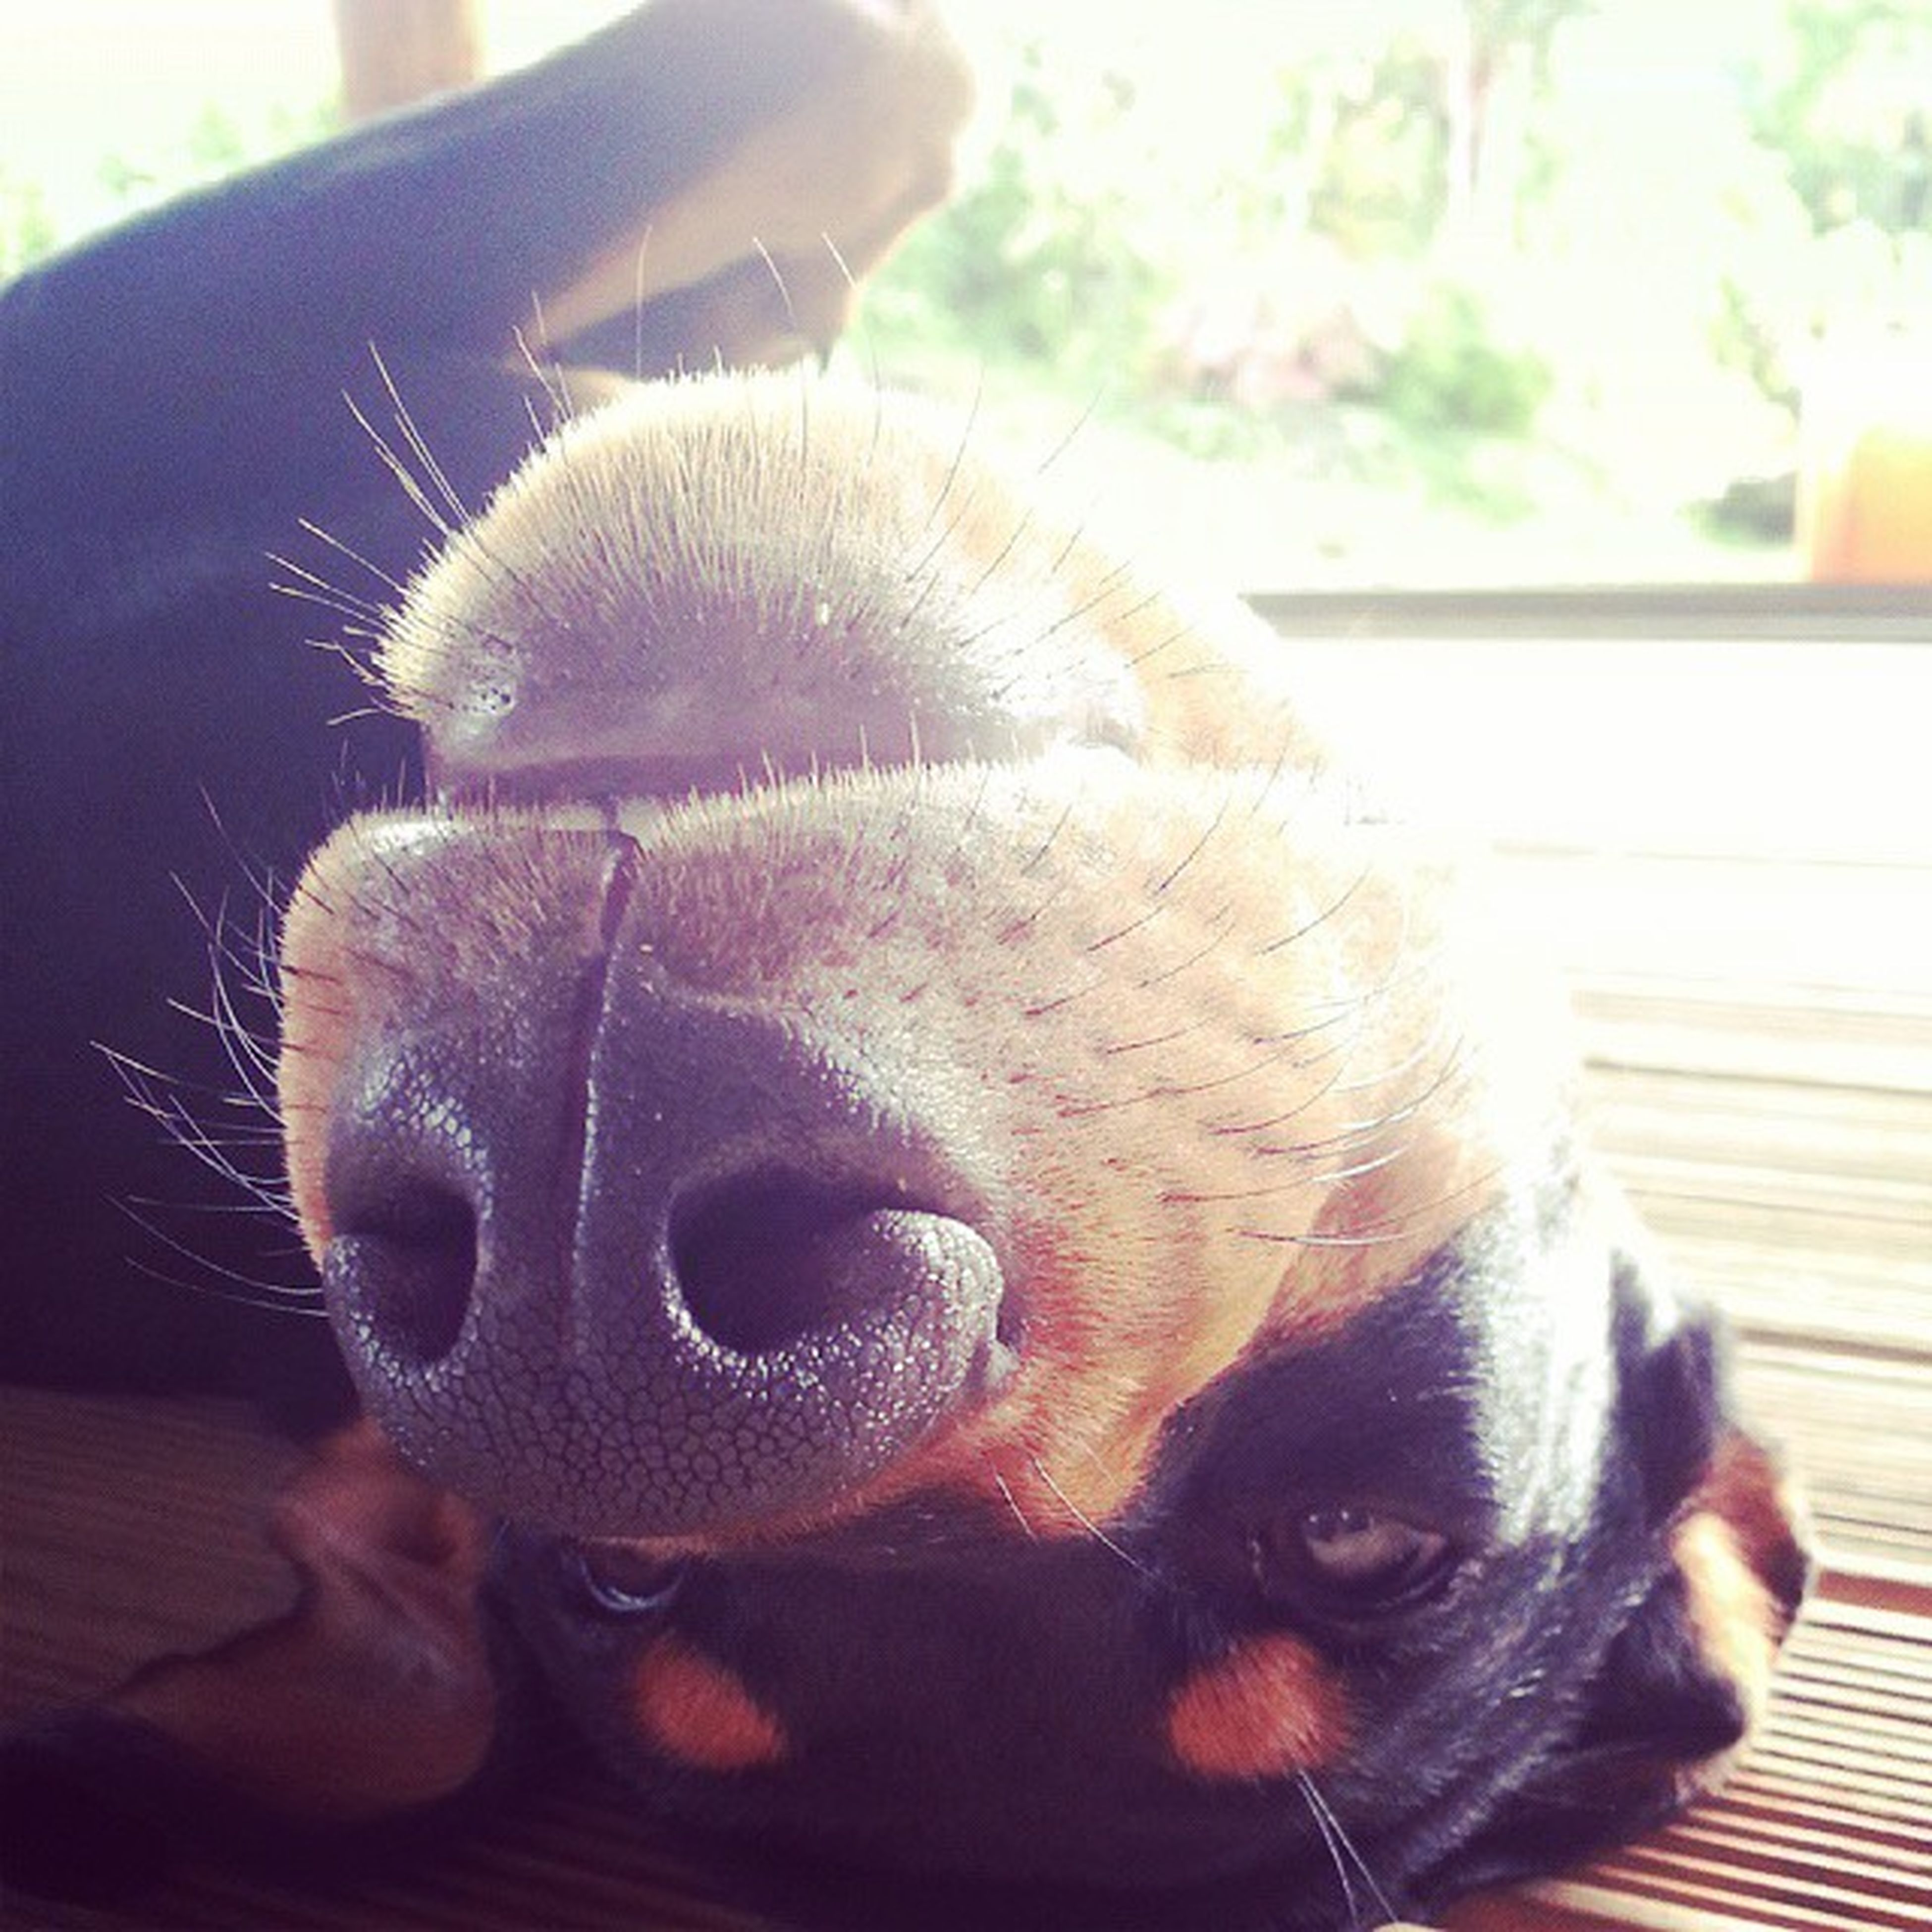 domestic animals, pets, animal themes, mammal, one animal, dog, close-up, animal head, focus on foreground, indoors, relaxation, animal body part, snout, no people, lying down, resting, home interior, eyes closed, animal nose, day